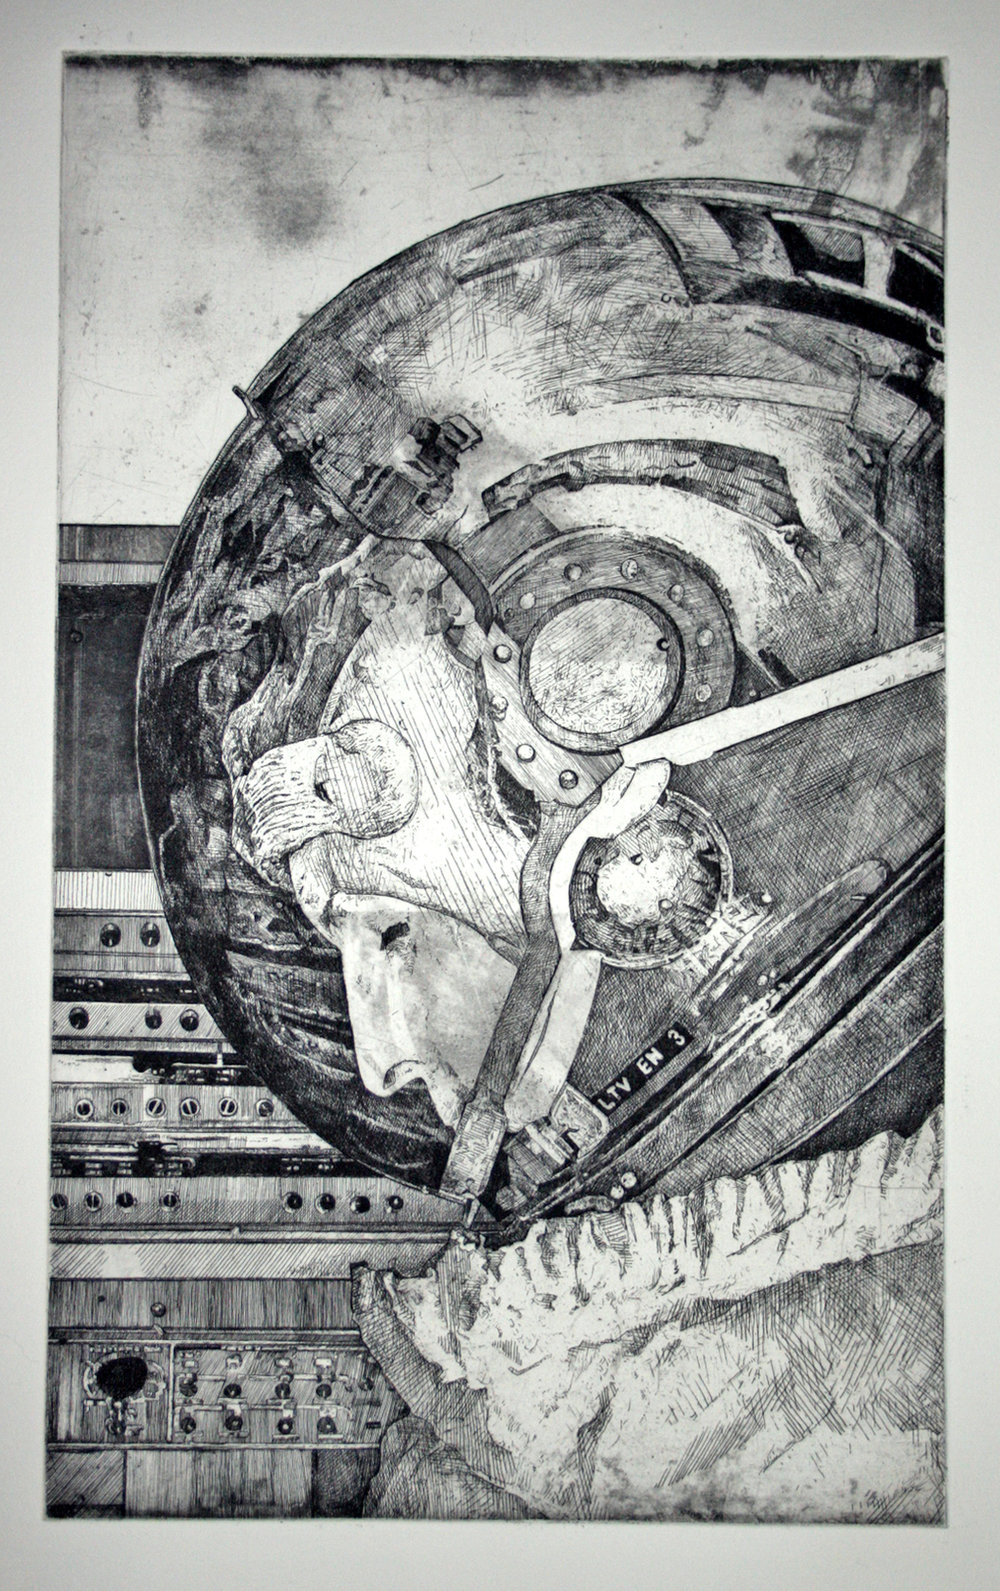 Everything Will Be OK, 2001 etching (Edition of 20) 28 x 20 inches JKO 013G